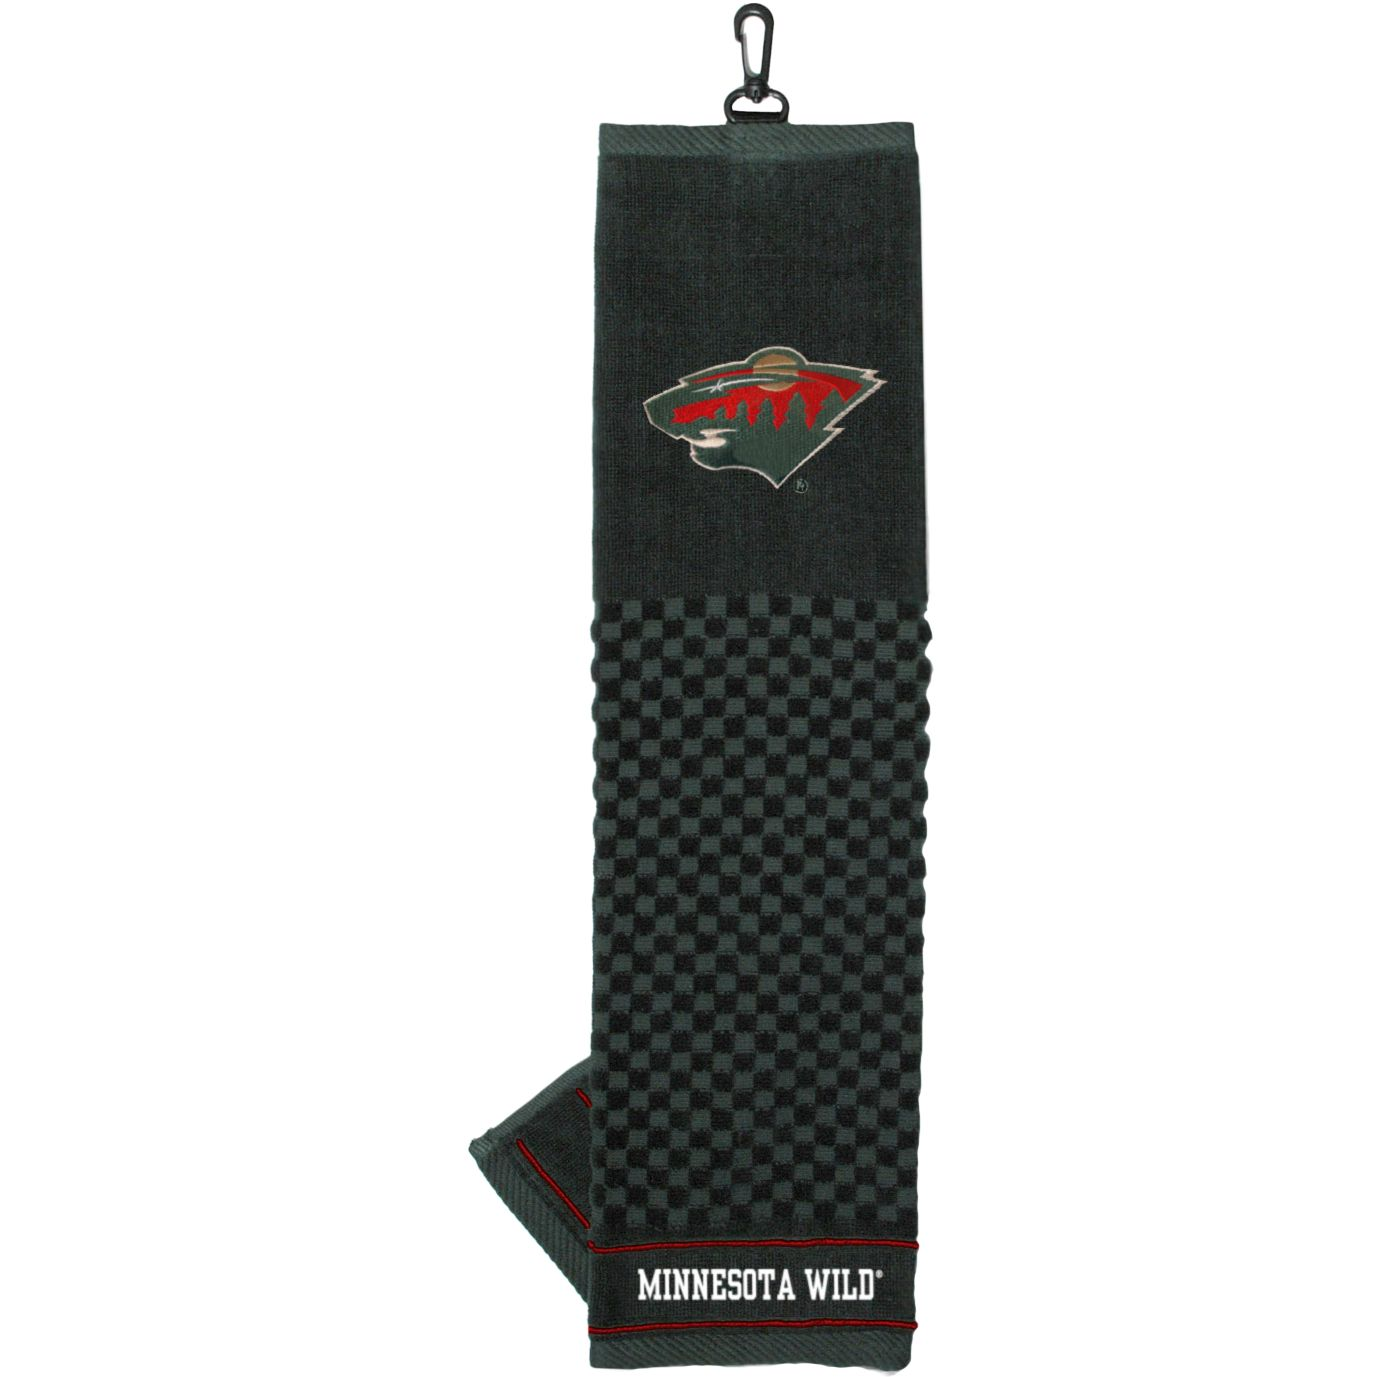 Team Golf Minnesota Wild Embroidered Towel